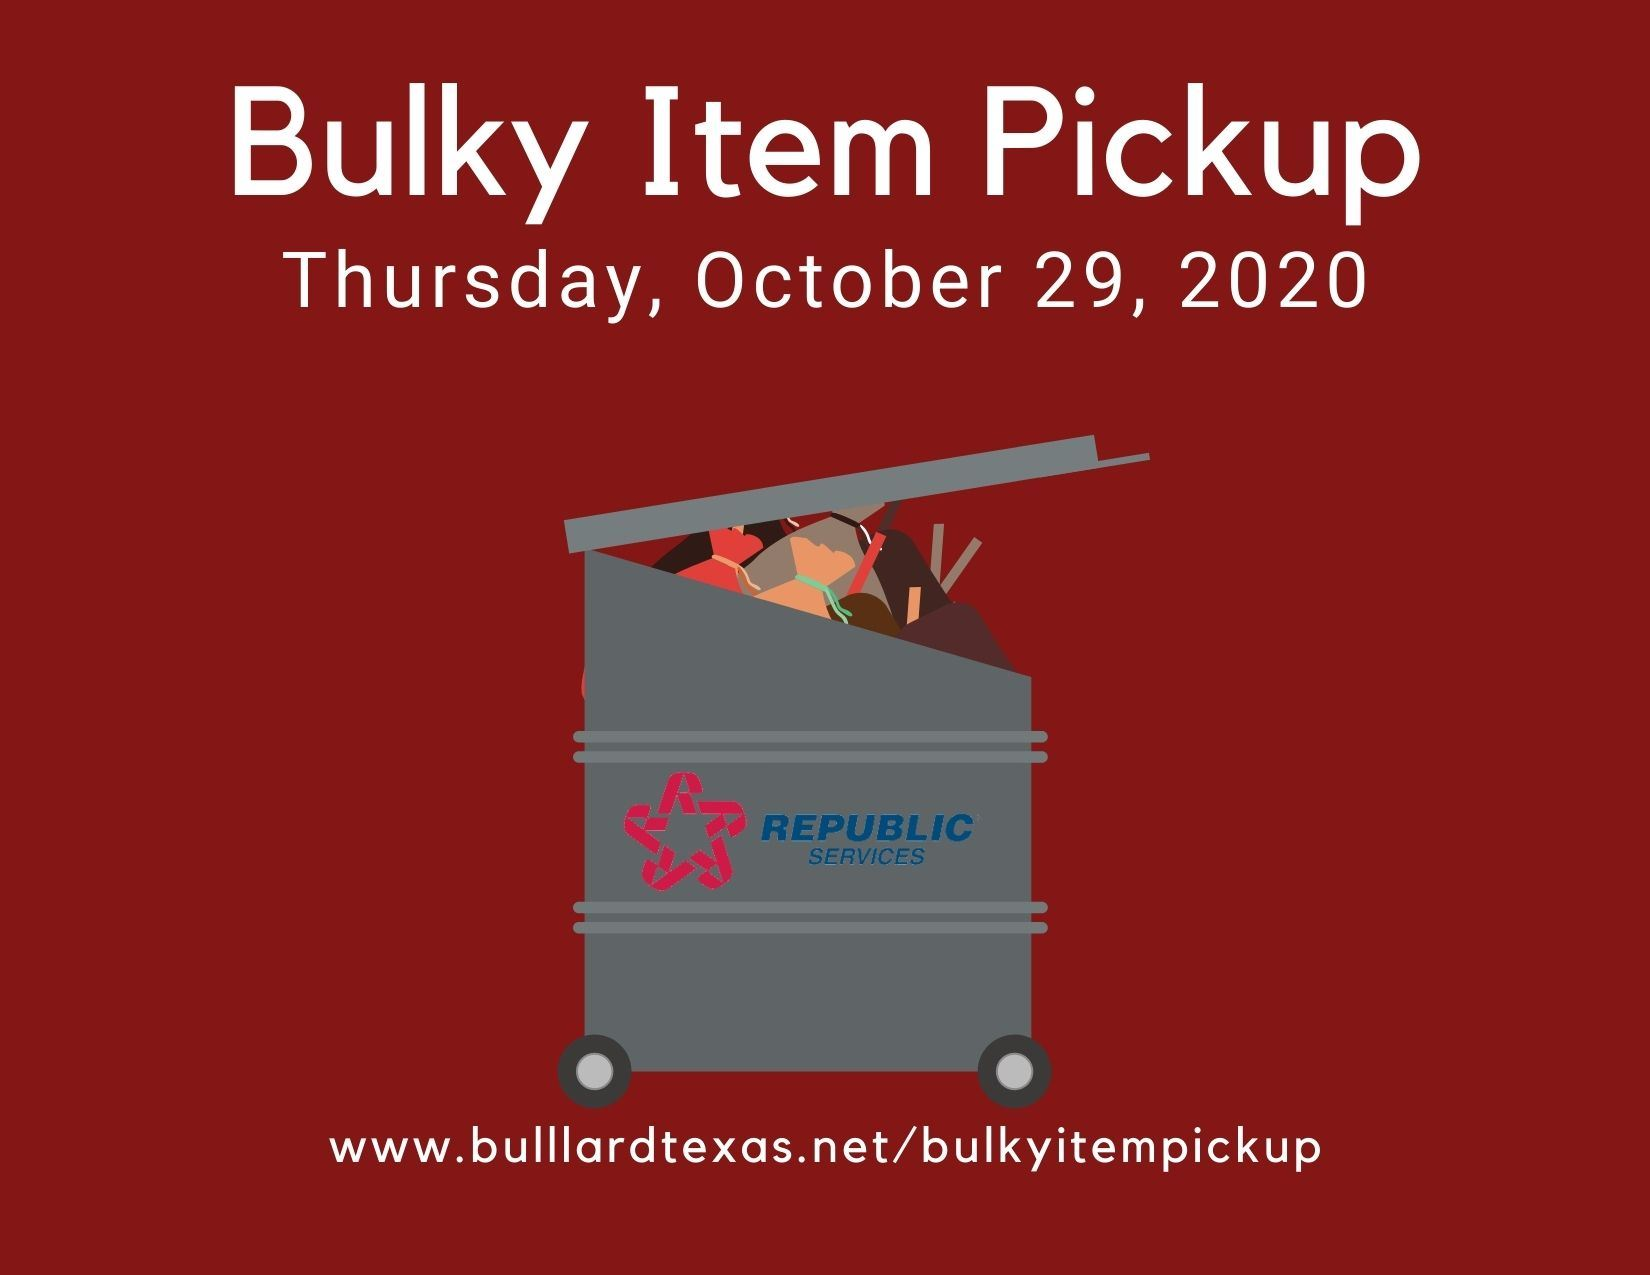 Oct. 29 Bulky item pickup